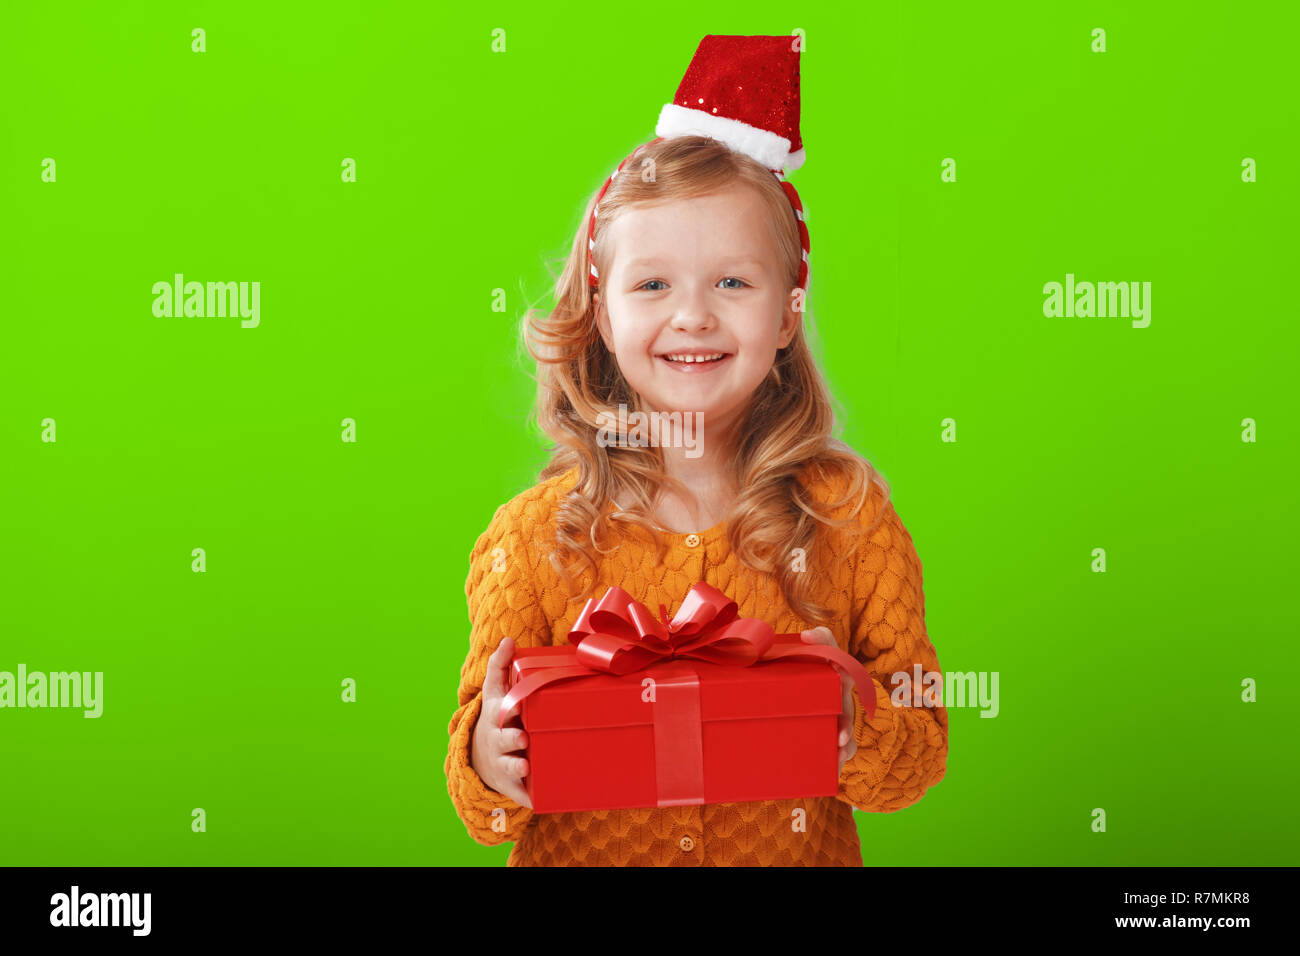 ea862204150 Happy little child girl in a warm knitted sweater and cap Santa Claus is  holding a